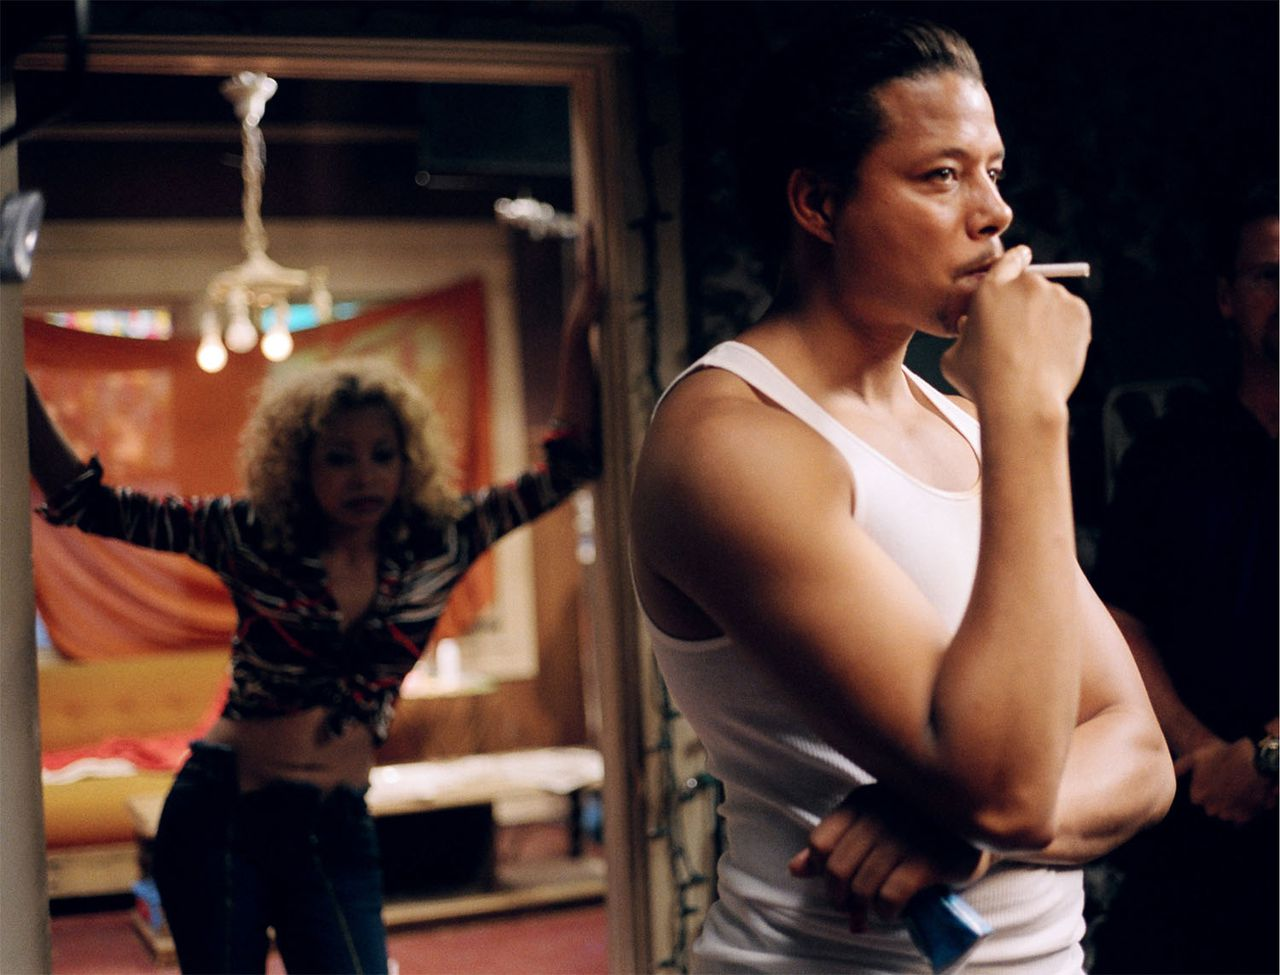 Paula Jai Parker as Lexus (in shadow) and Terrence Howard as DJay in a scene from HUSTLE & FLOW, written and directed by Craig Brewer. Photo Credit: Alan Spearman / Crunk Pictures